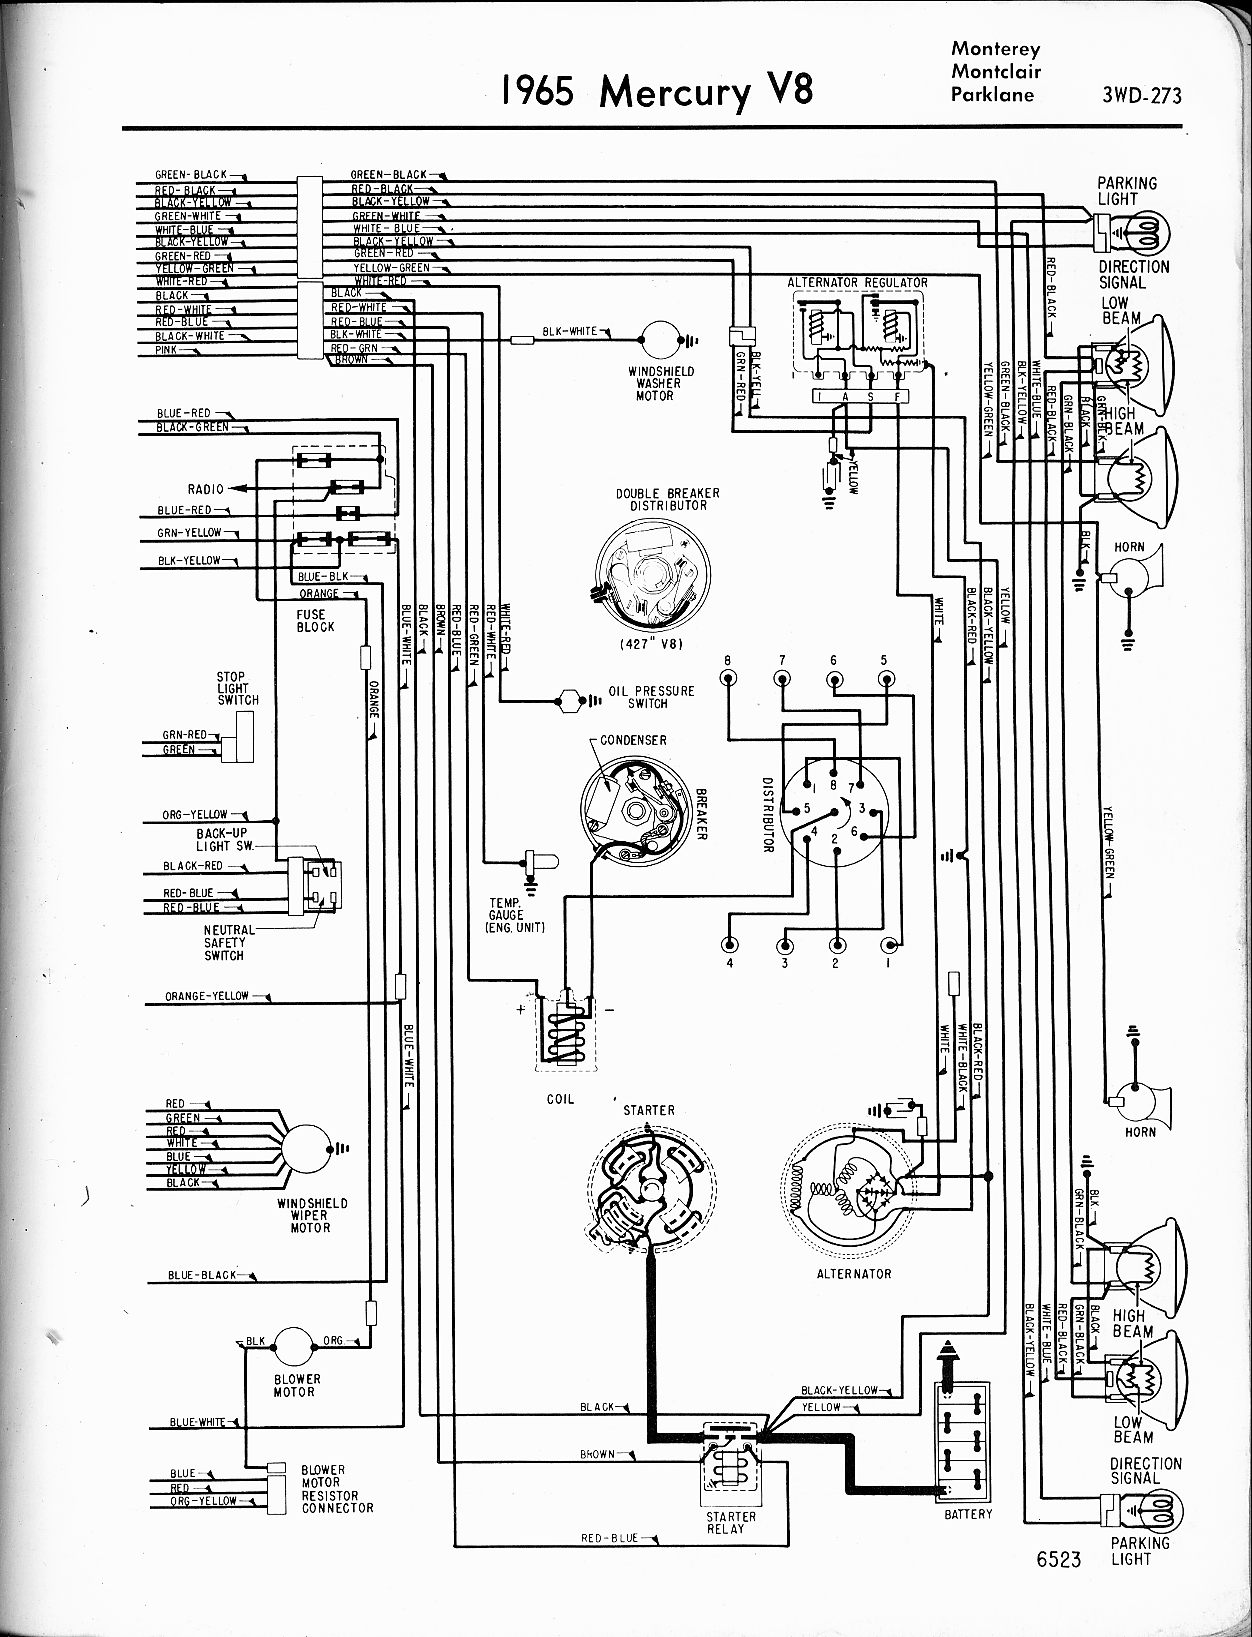 1951 Chevy Wiring Diagrams Automotive Charging System Library Site 1965 V8 Monterey Montclair Parklane Left Page Mercury